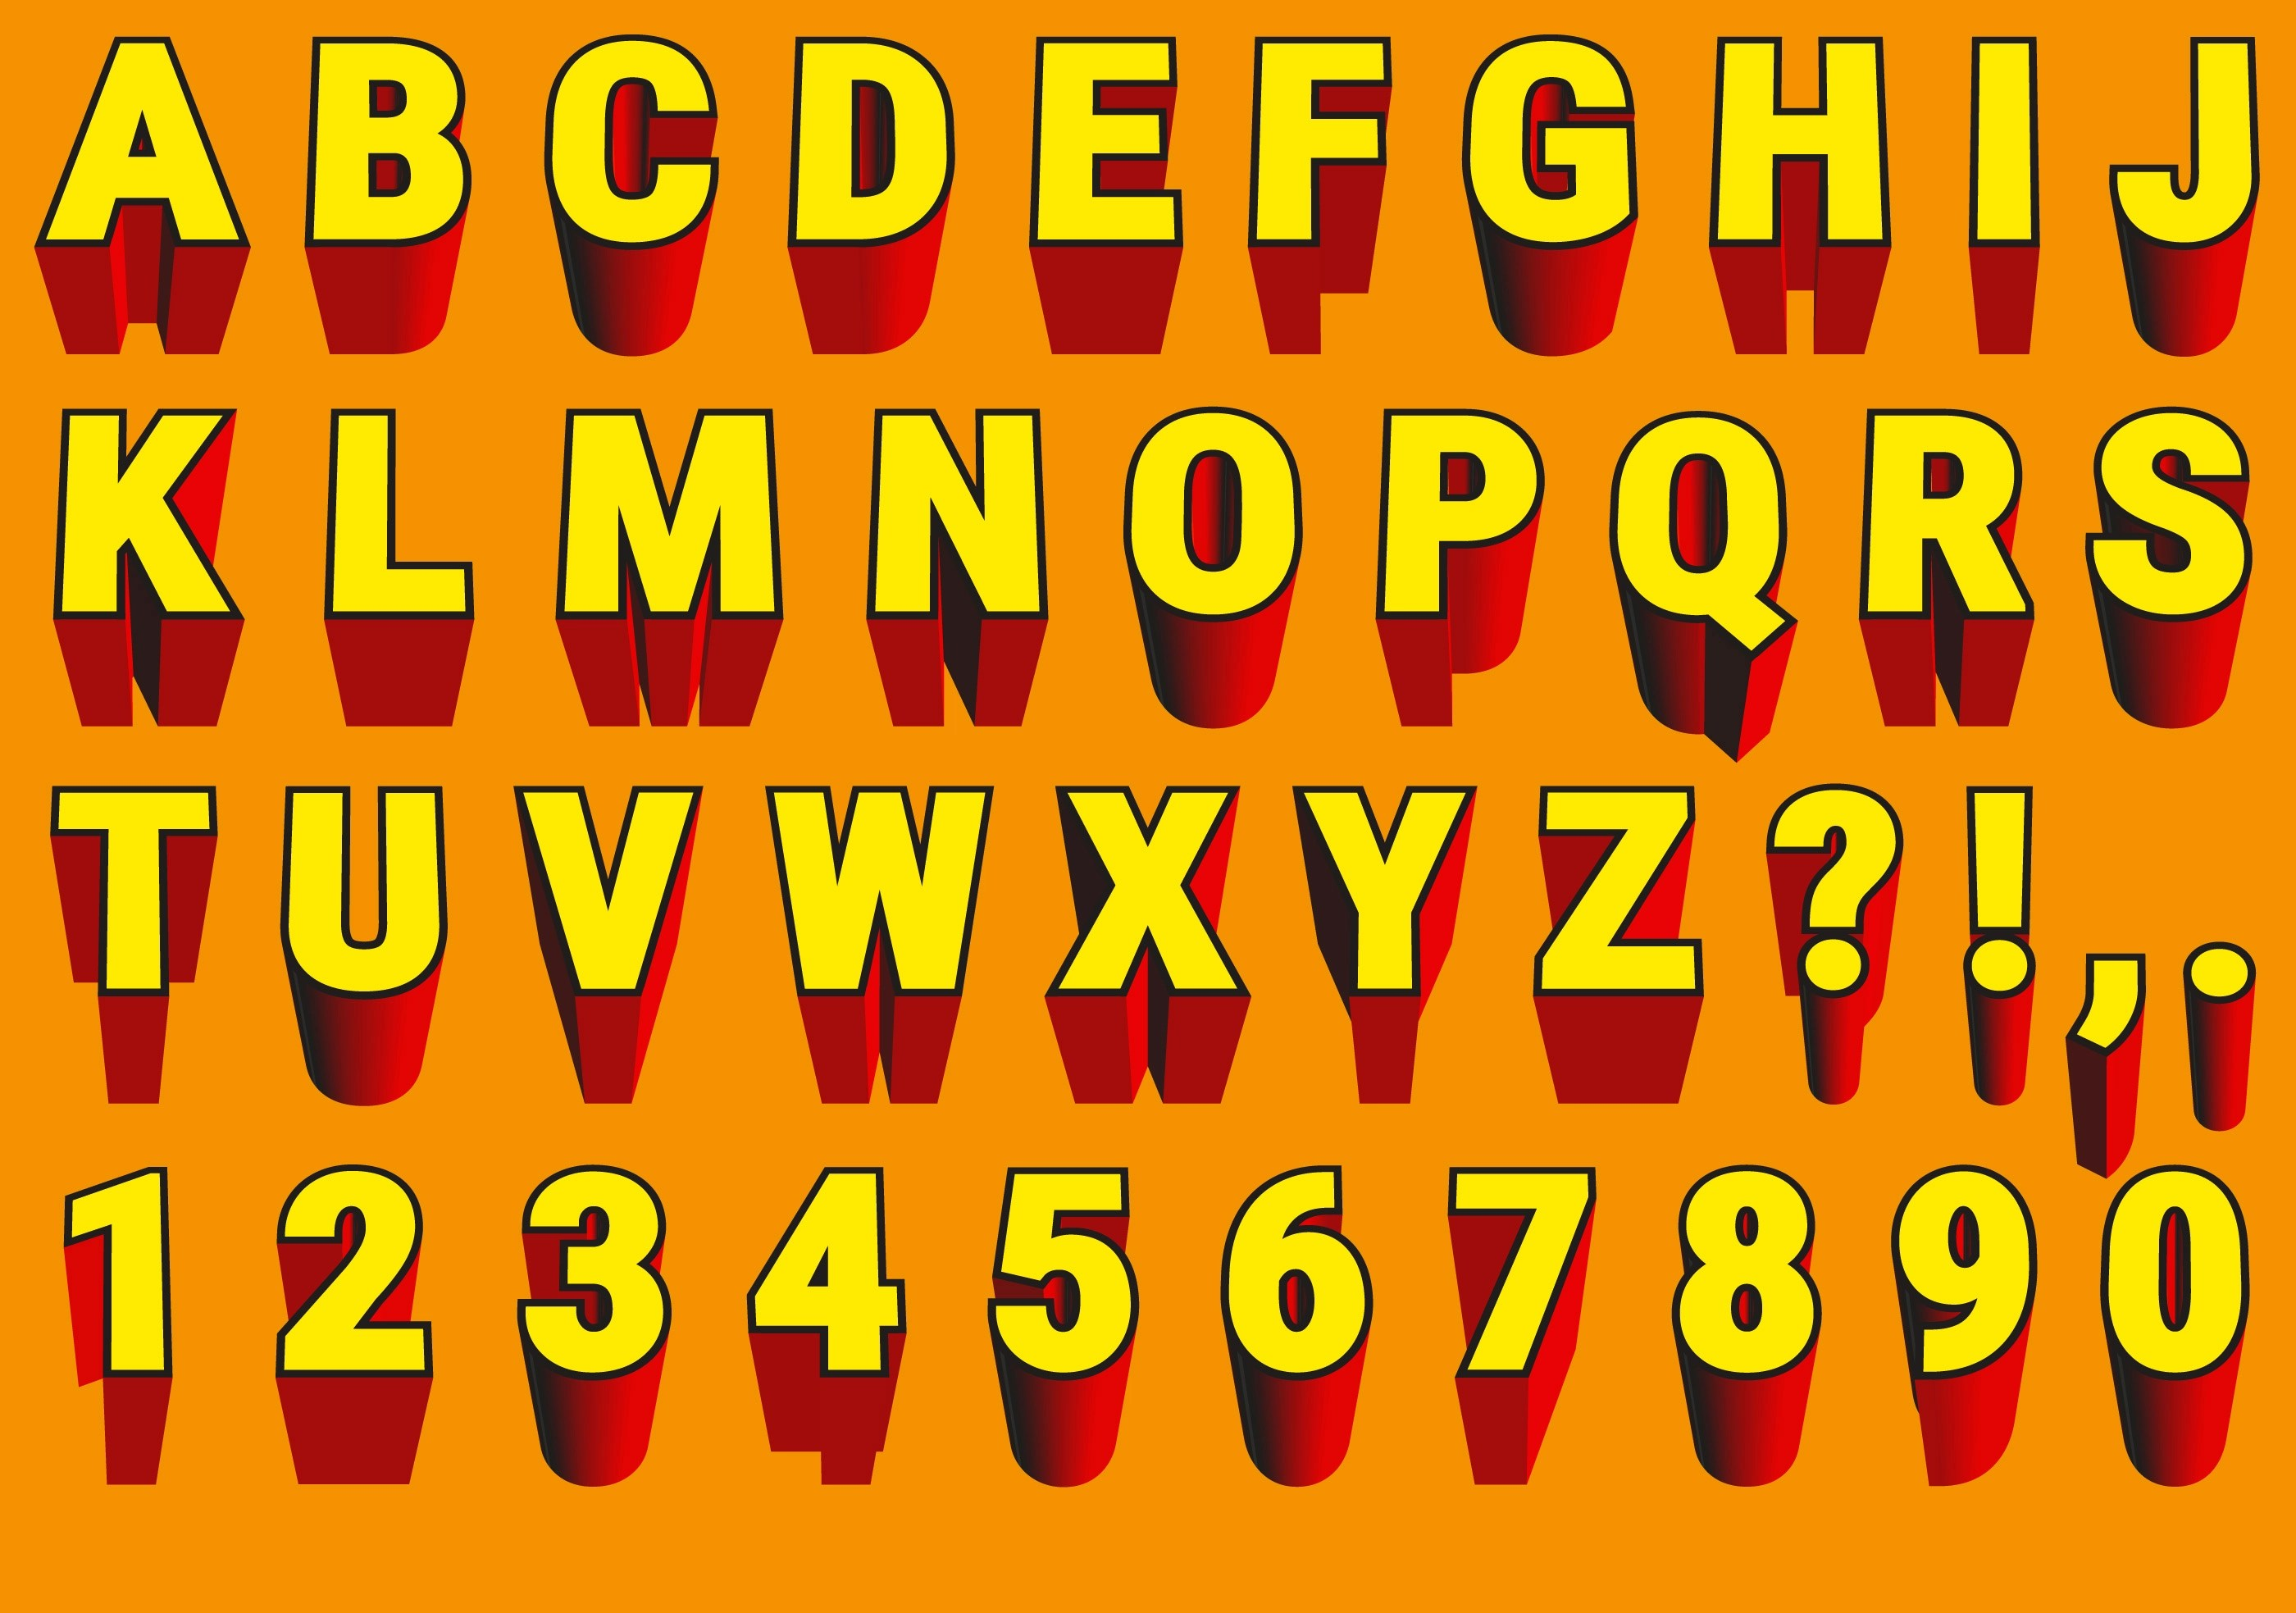 3d Schrift Abc Vector Red And Yellow 3d Font Download Free Vector Art Stock